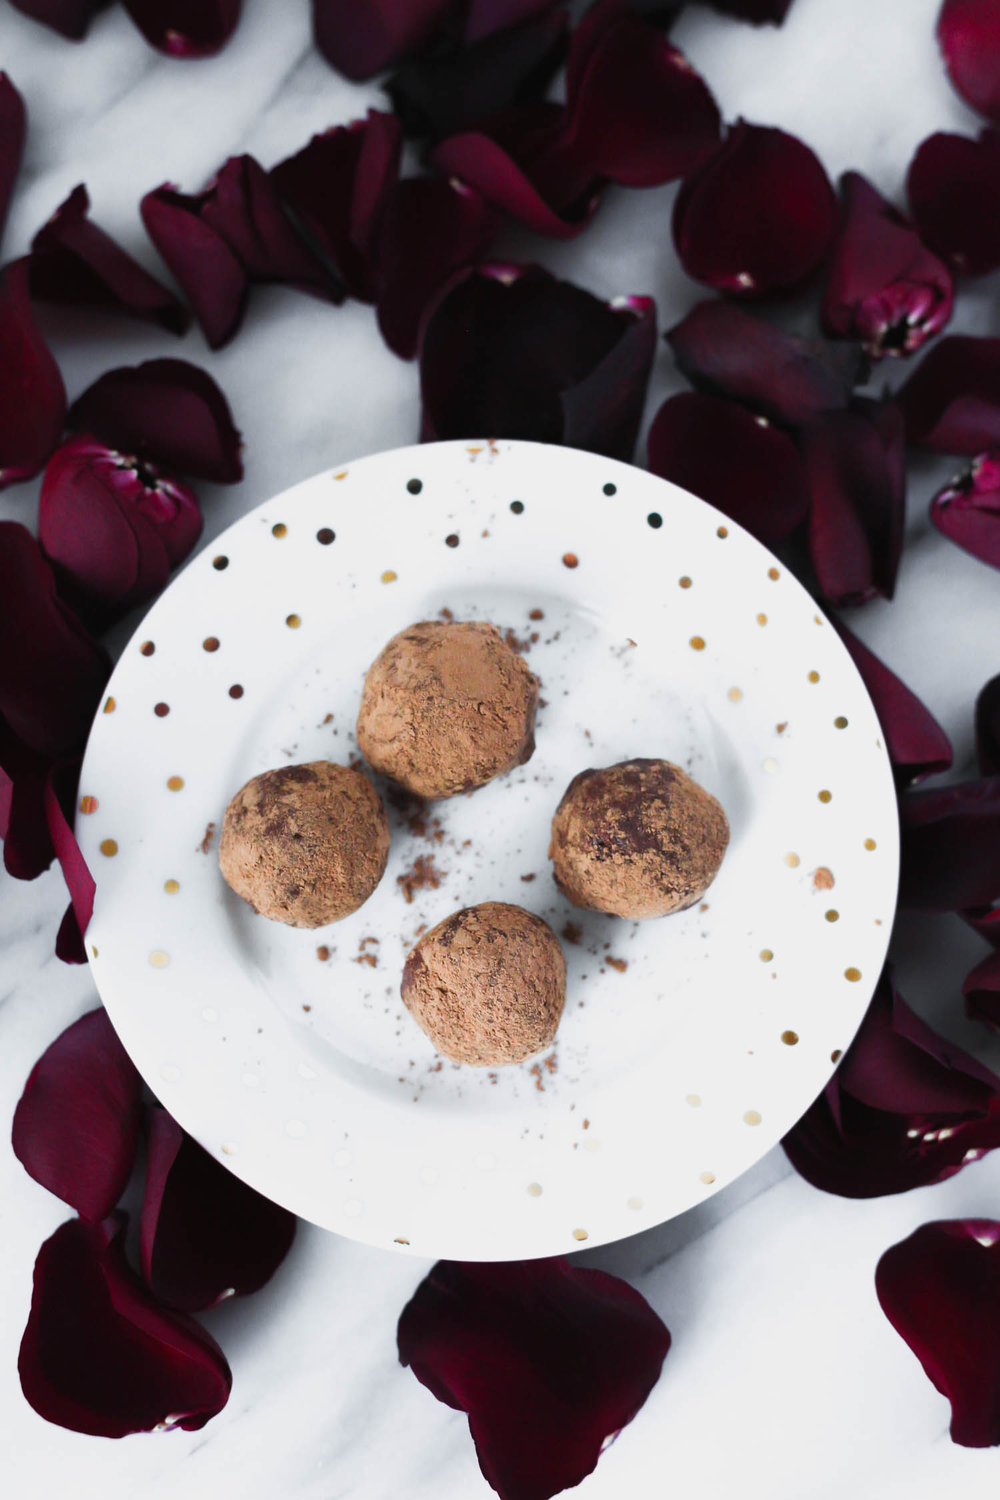 Chocolate Macadamia Truffles, Vegan Recipe by Beautiful Ingredient